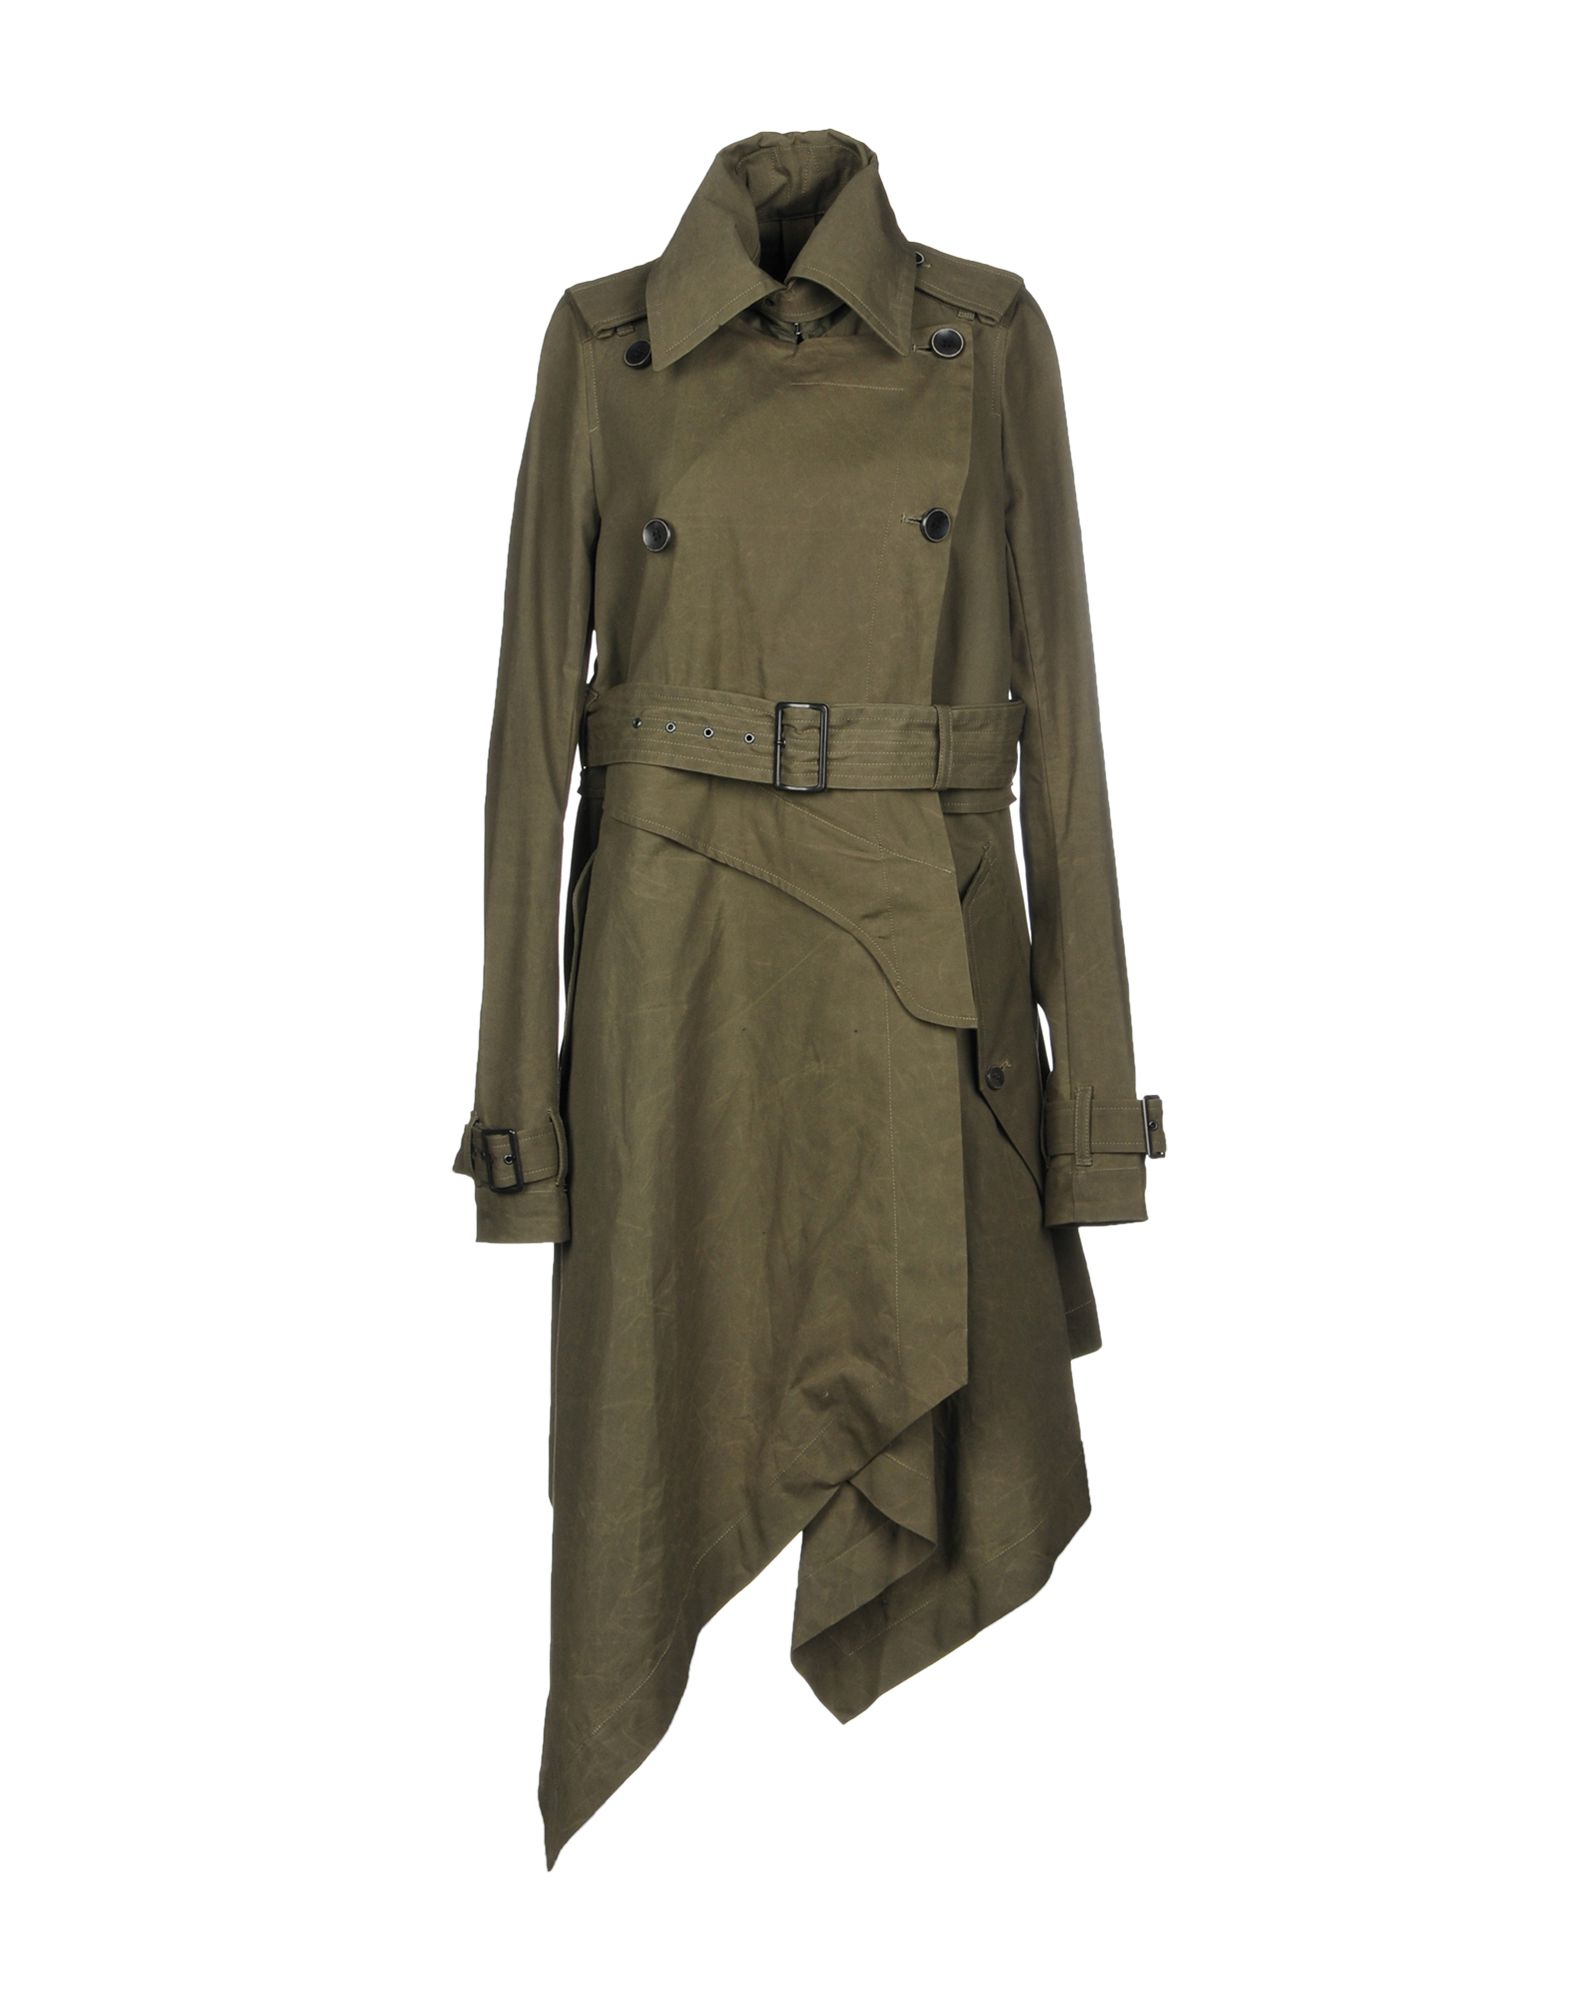 L.G.B. Double Breasted Pea Coat in Military Green